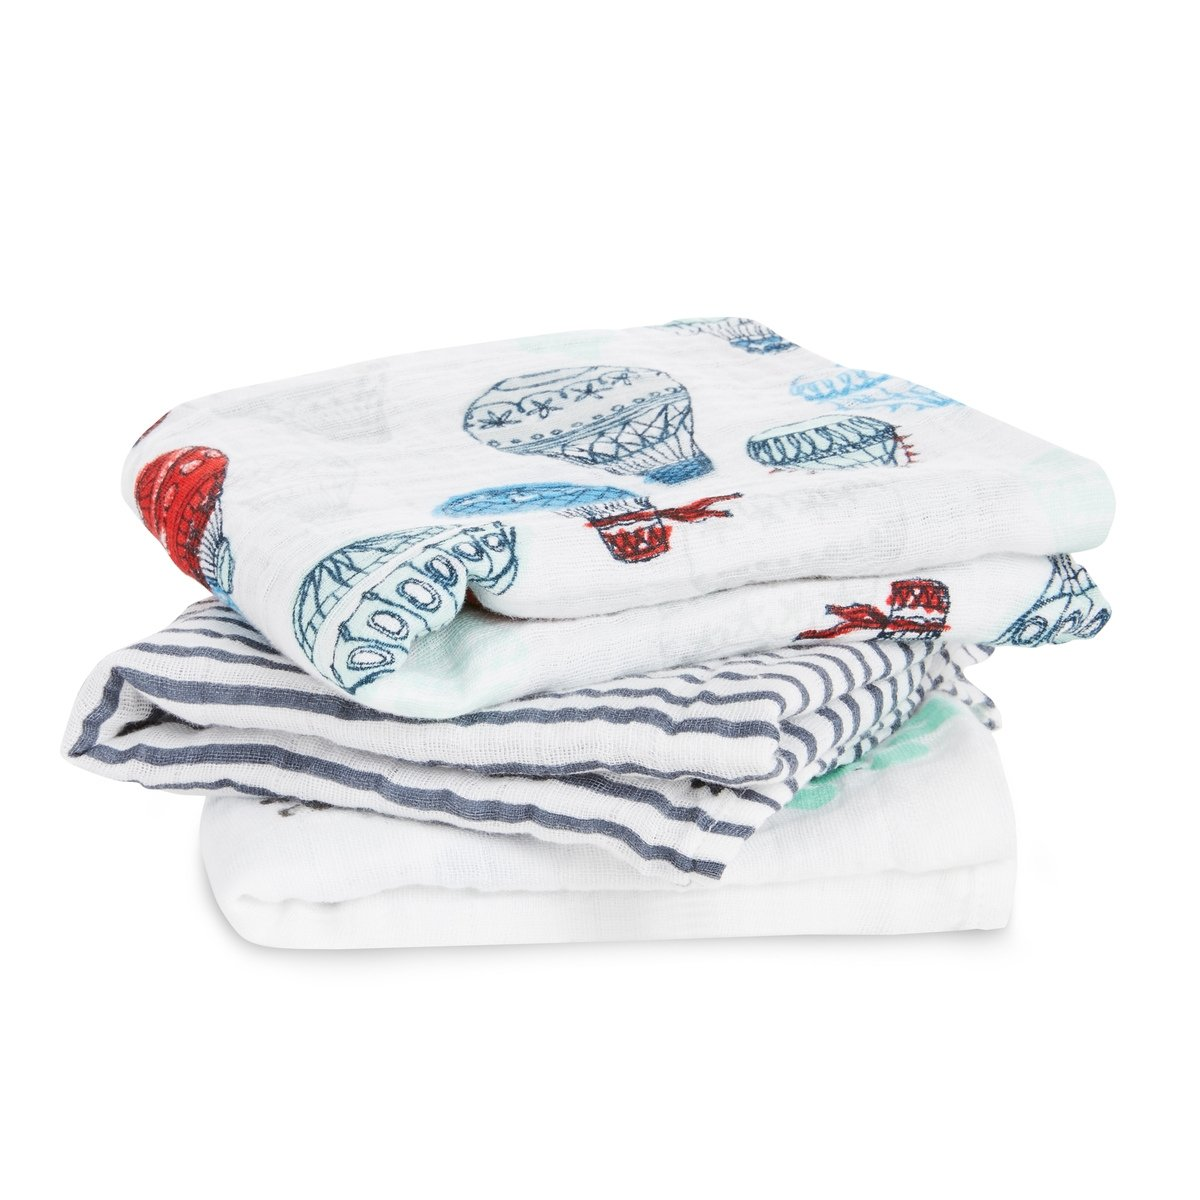 aden + anais musy squares, 100% cotton muslin, 70cm X 70cm, 3 pack, leader of the pack Aden and Anais 7226G